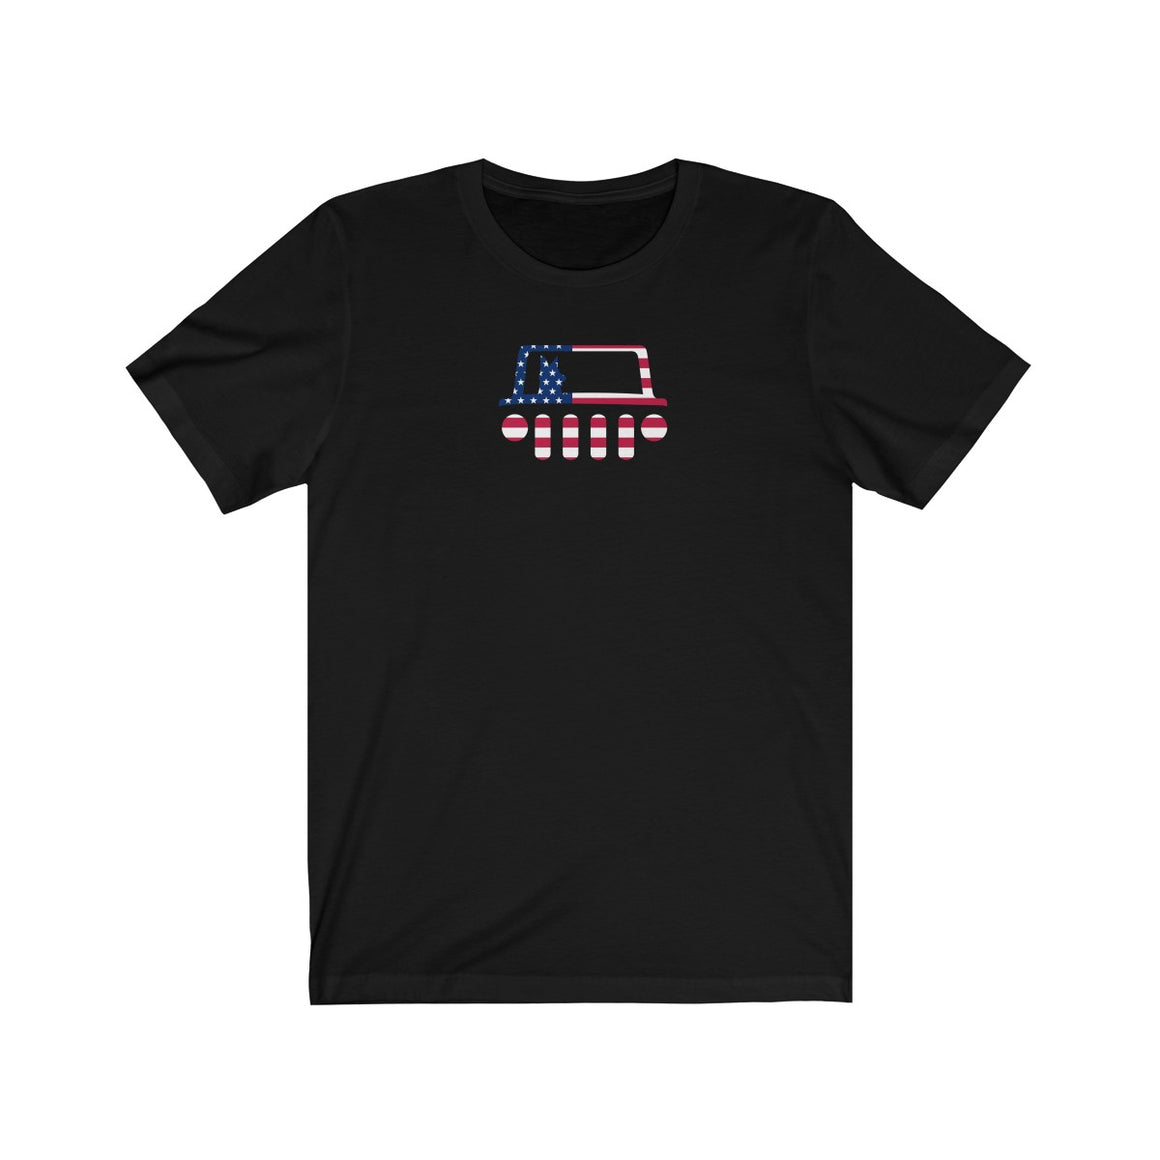 Black Dog Offroad 'Merica Tee - Black Dog Offroad